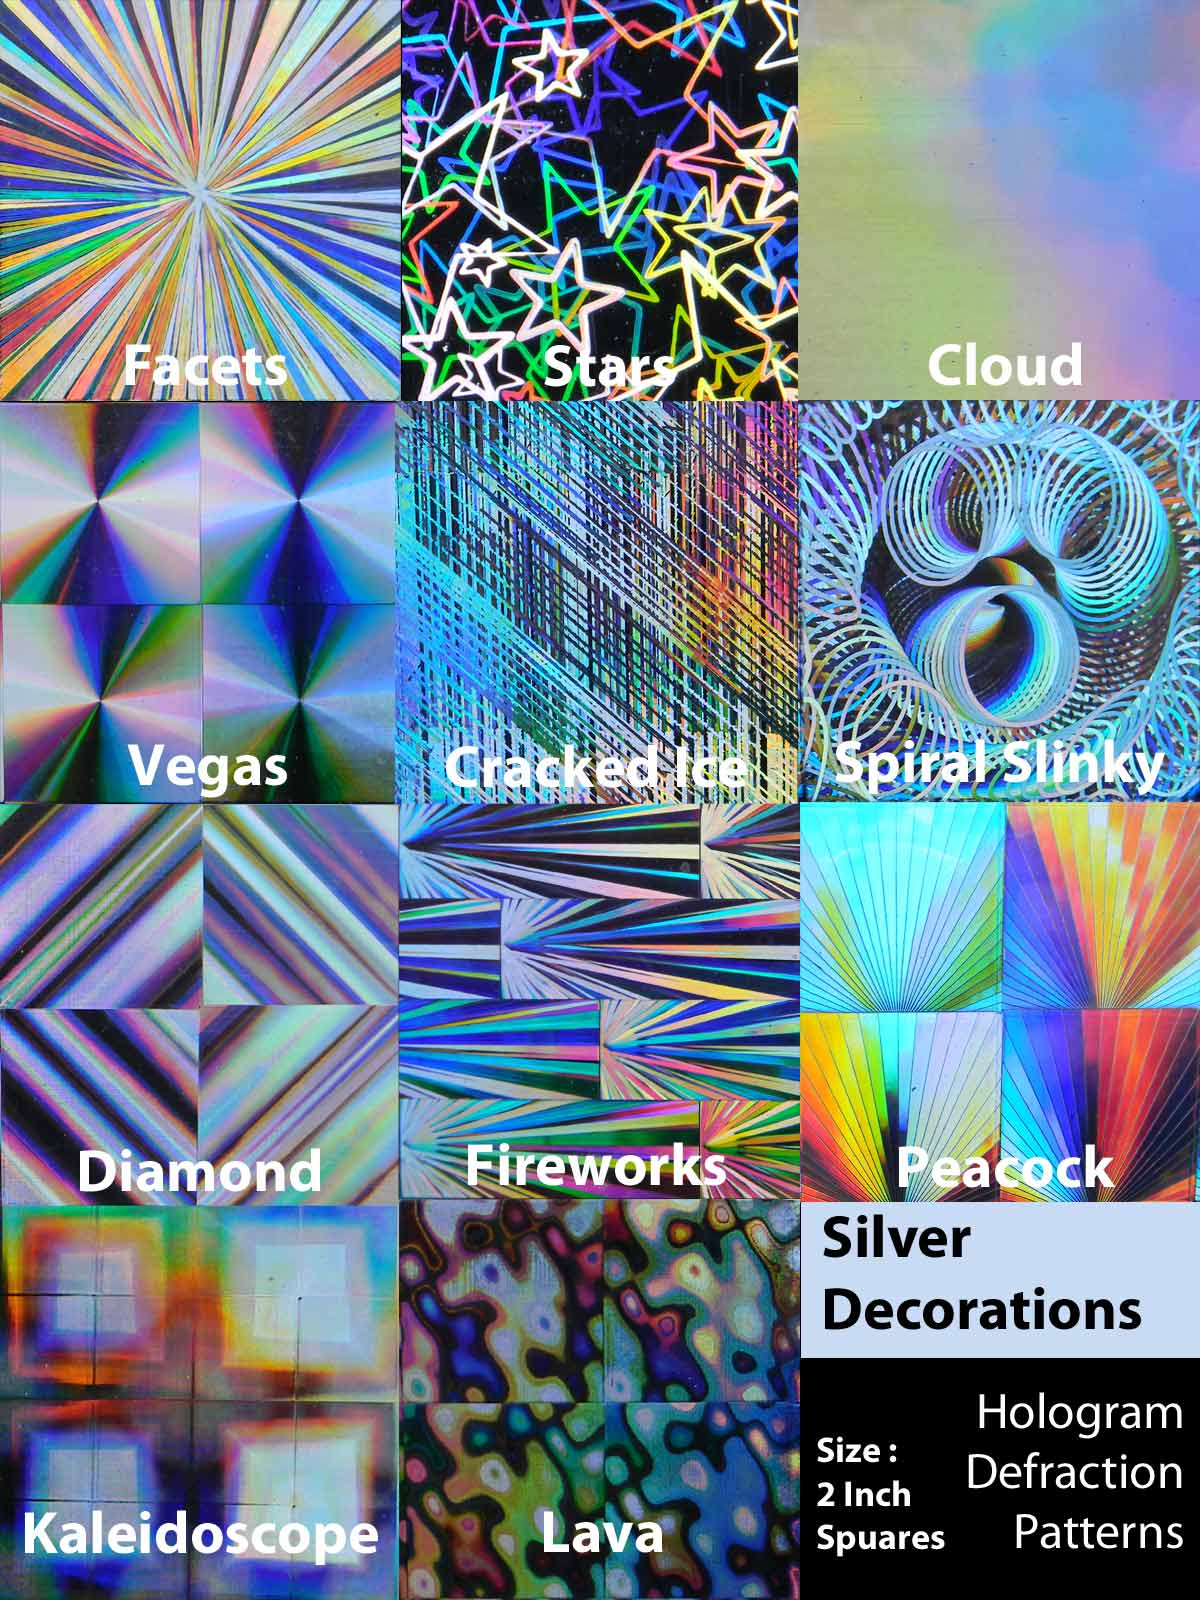 Decoration Patterns